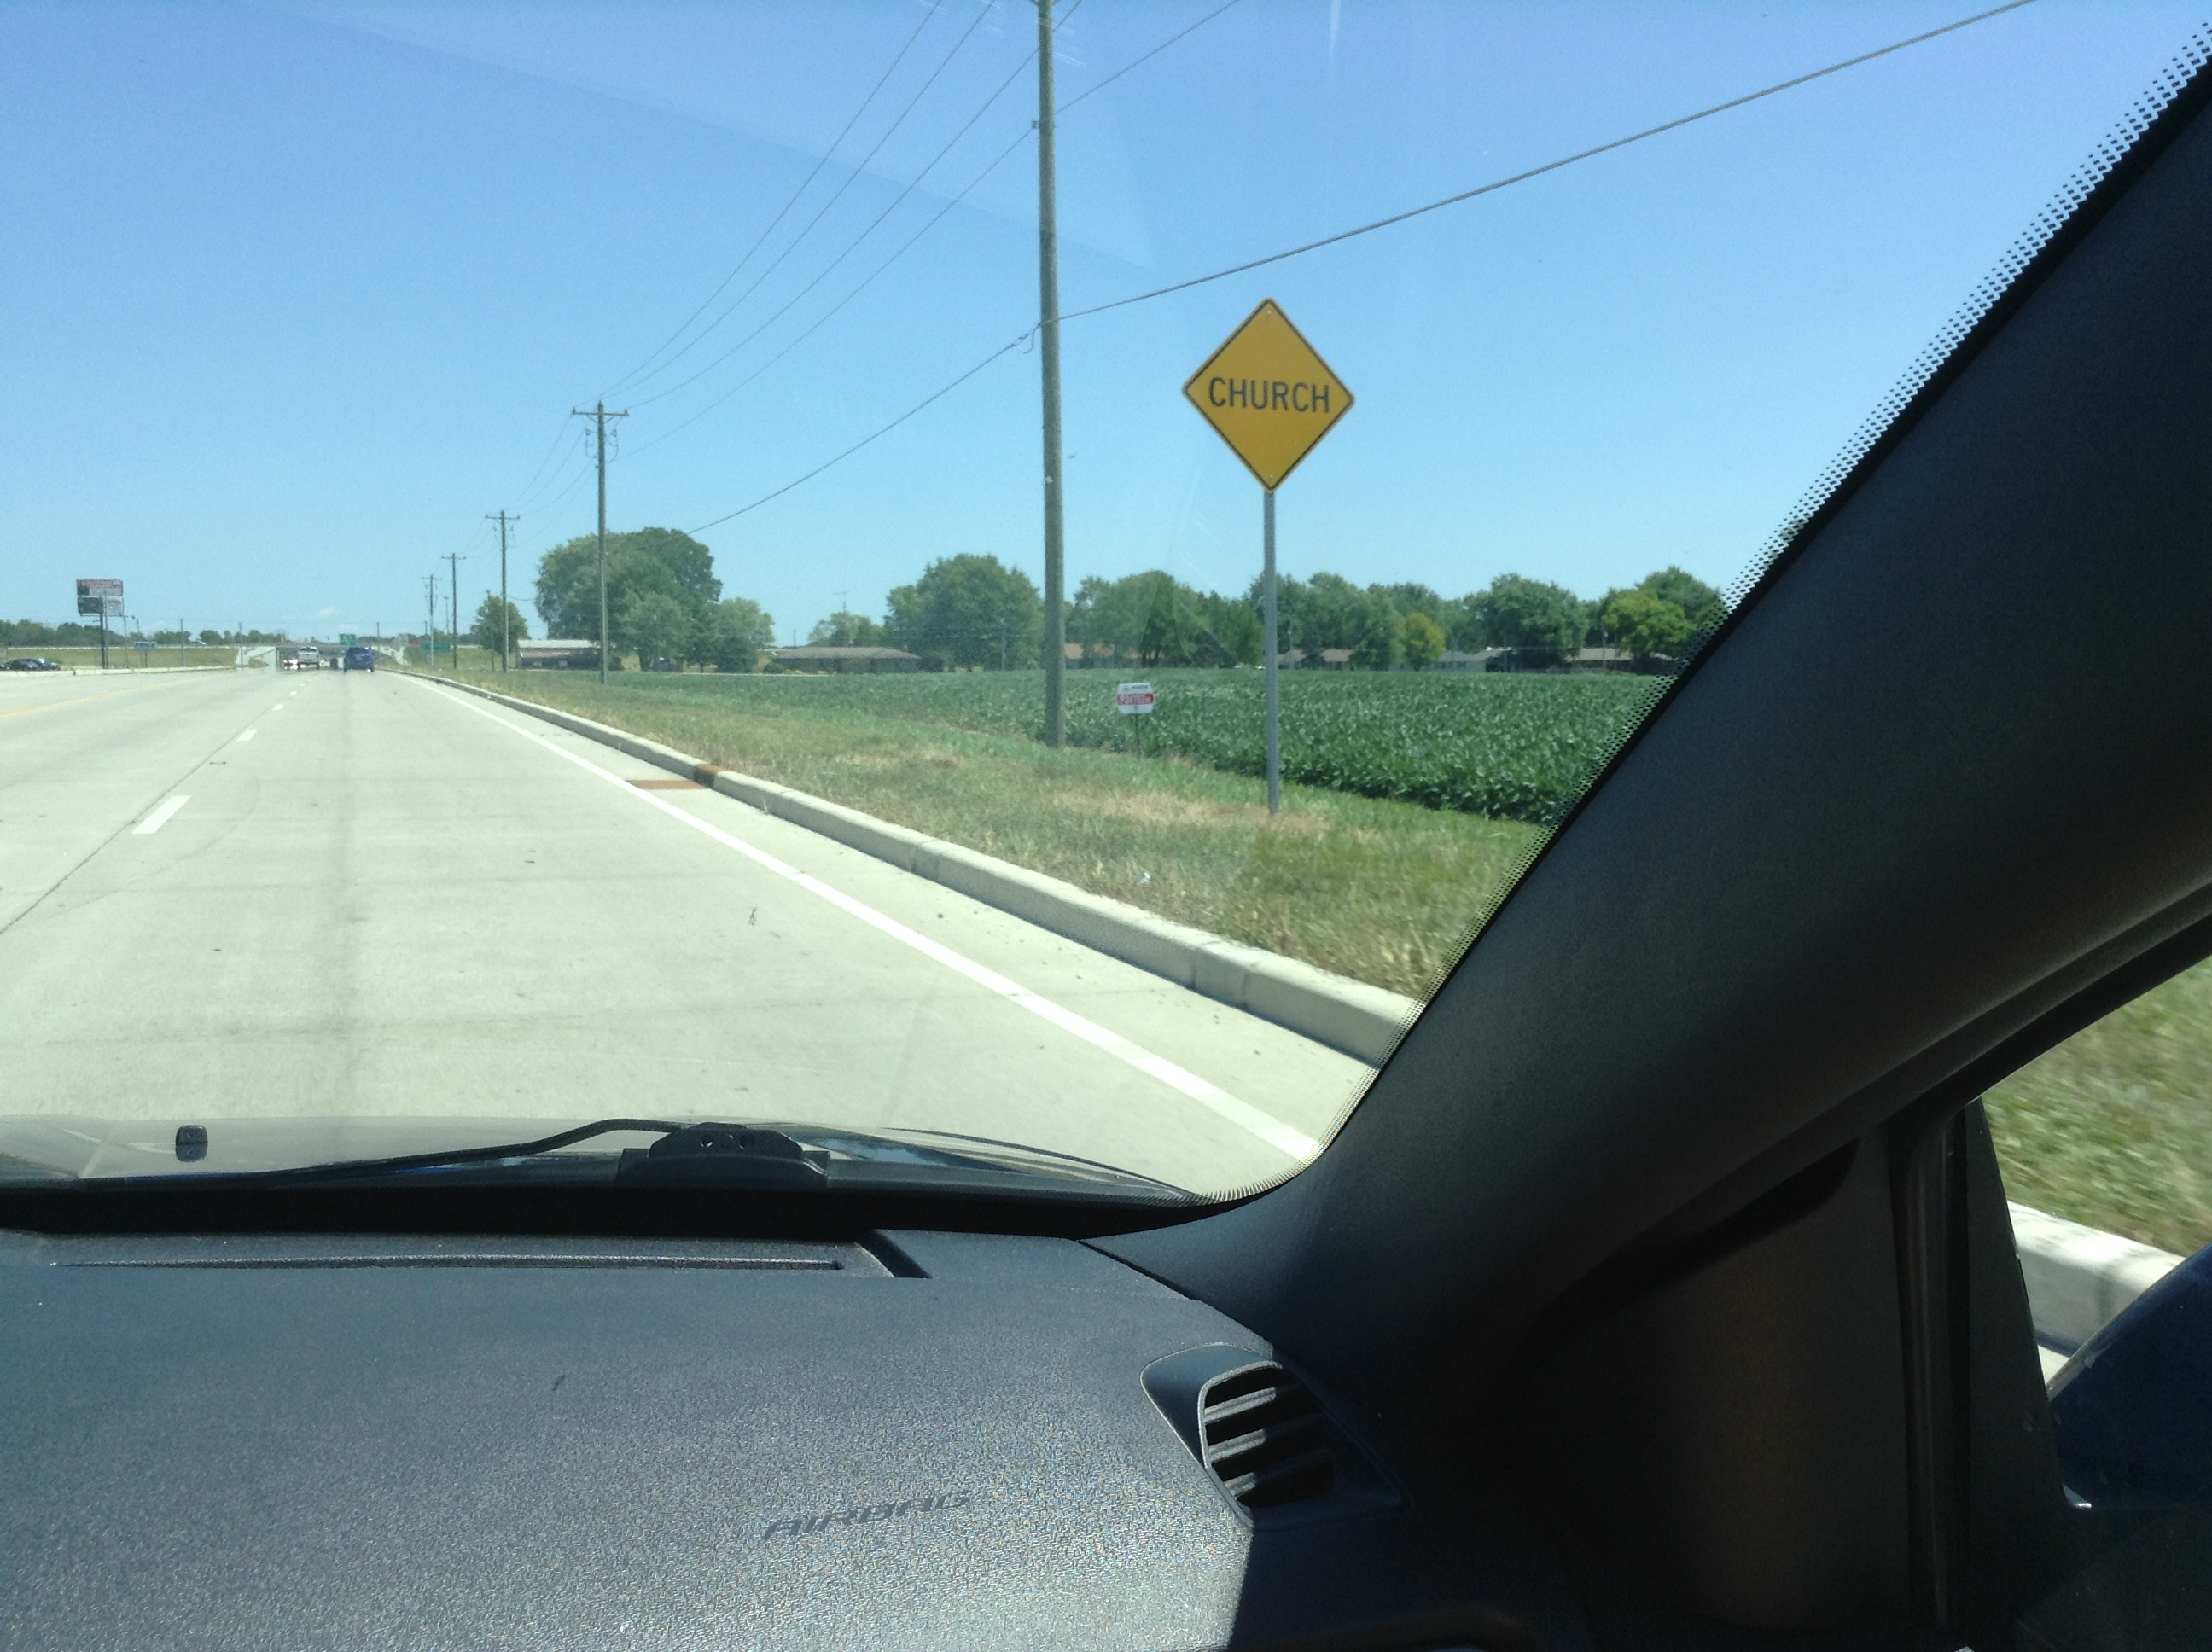 That's a Caution Sign!  Are they warning us there's a church?!!